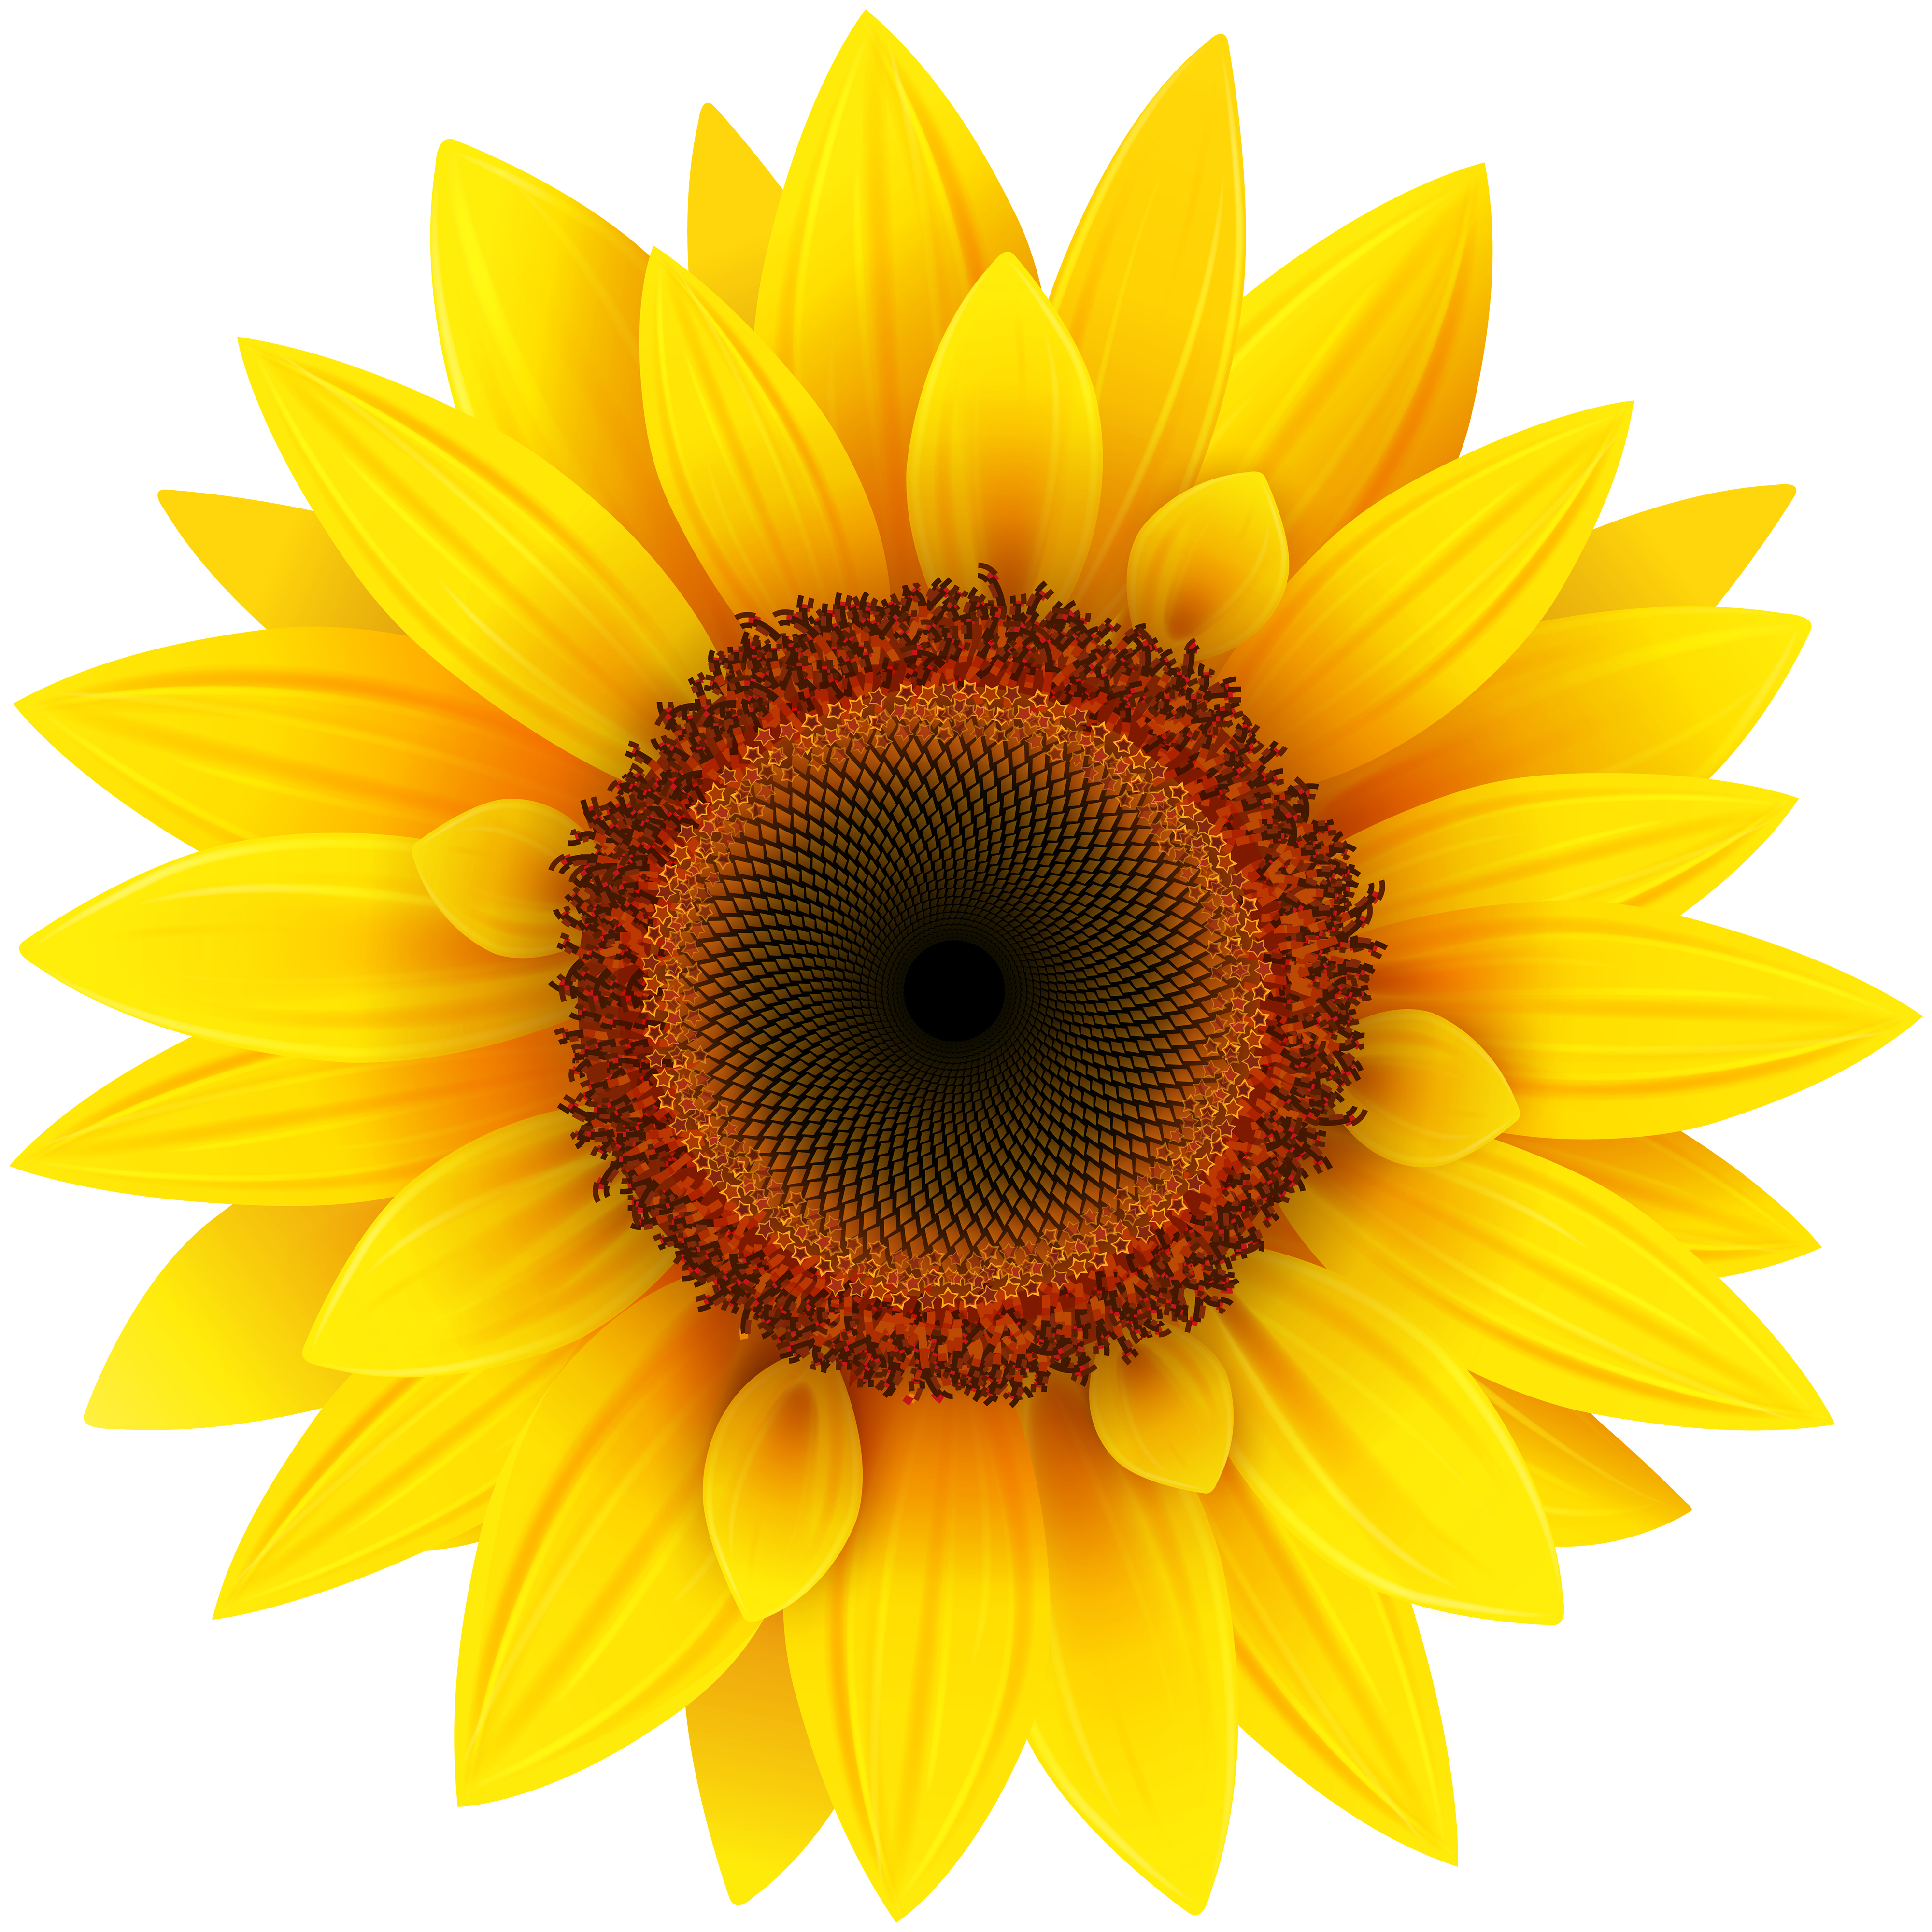 sunflower clipart clear background